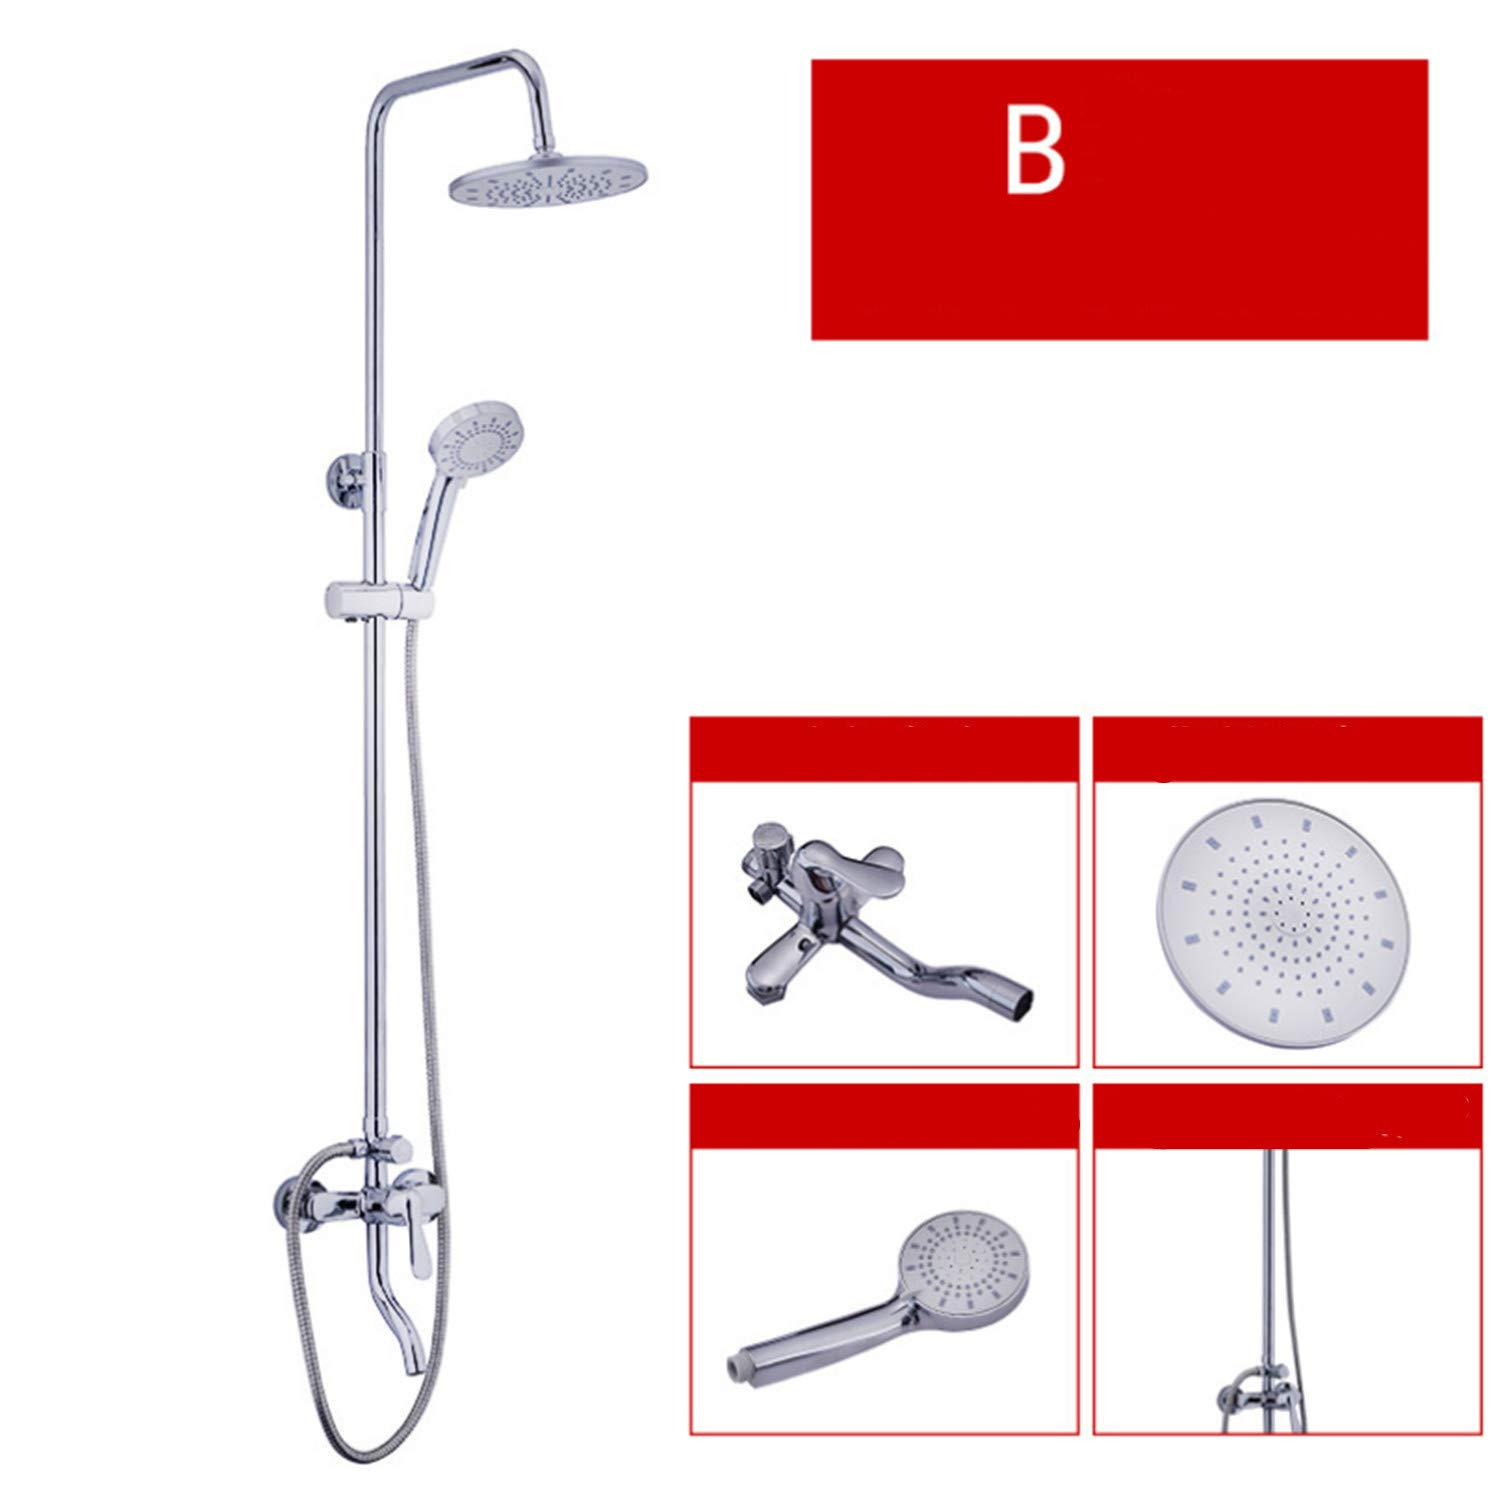 UNIQUE-F Shower System Various Spray Pattern White Chrome-Plated Stainless Steel Wear-Resistant Rust-Proof Polished 2 Styles